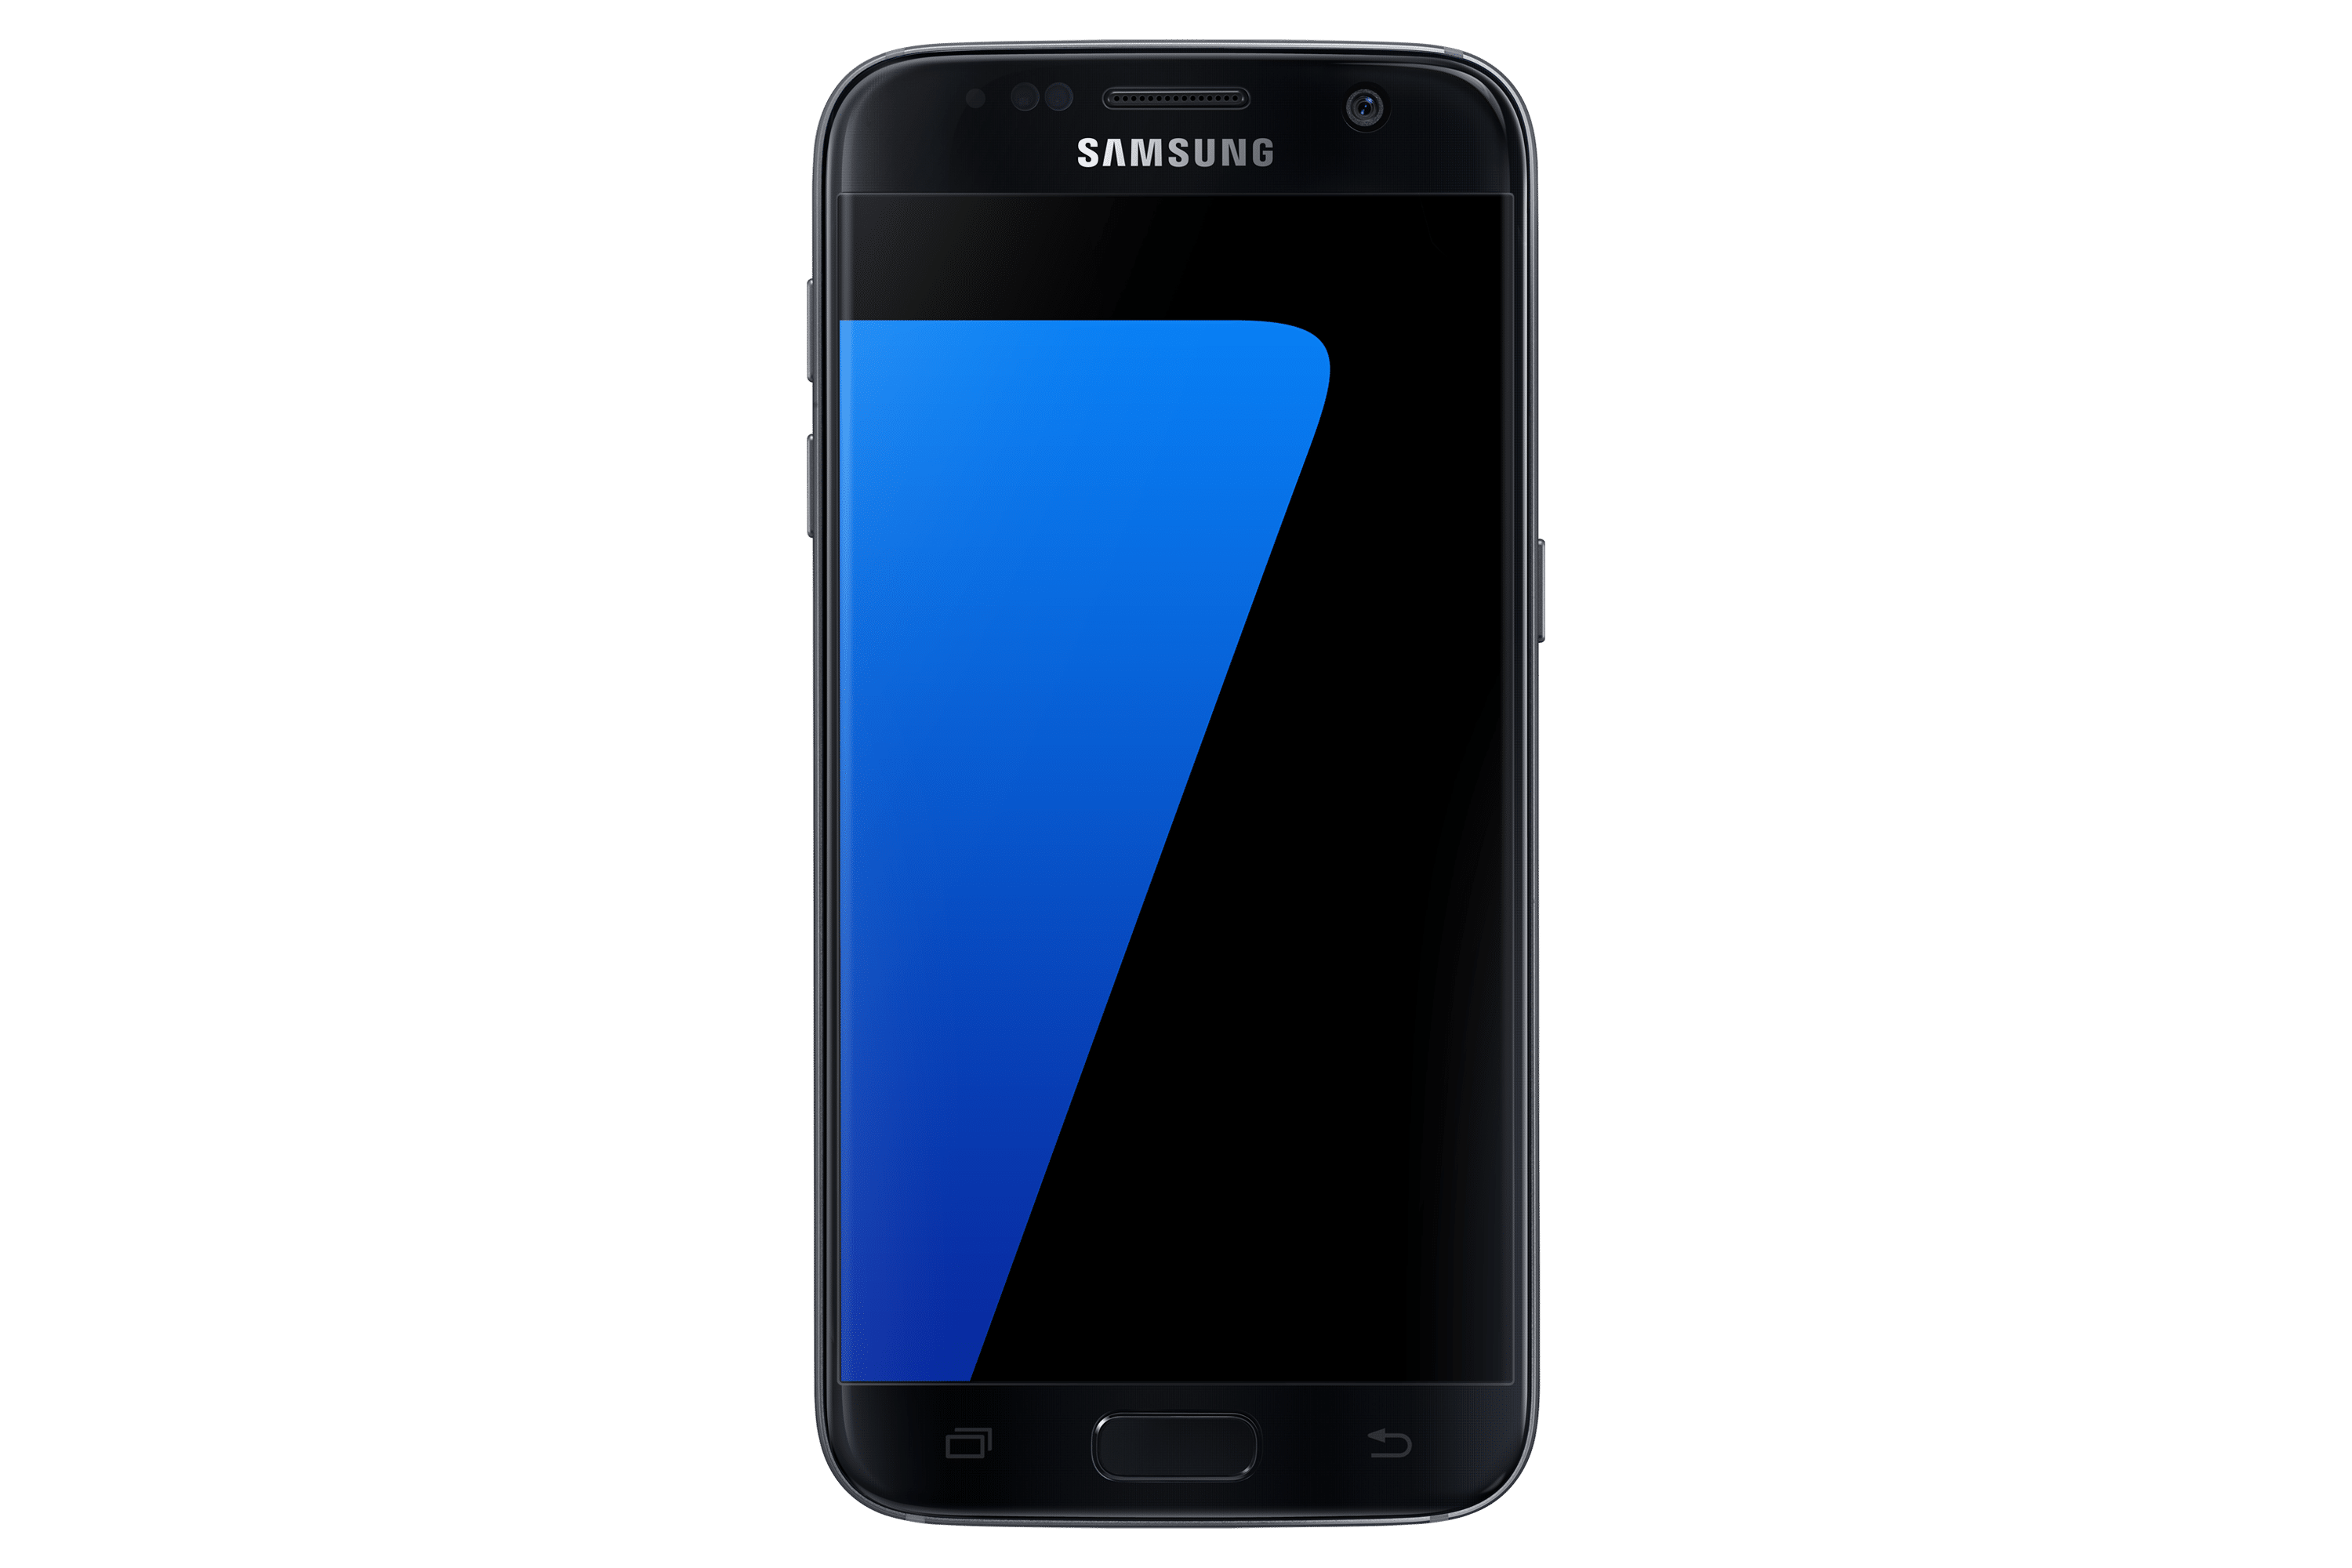 samsung galaxy s7 edge android 7 0 nougat firmware vodafone downloaden. Black Bedroom Furniture Sets. Home Design Ideas